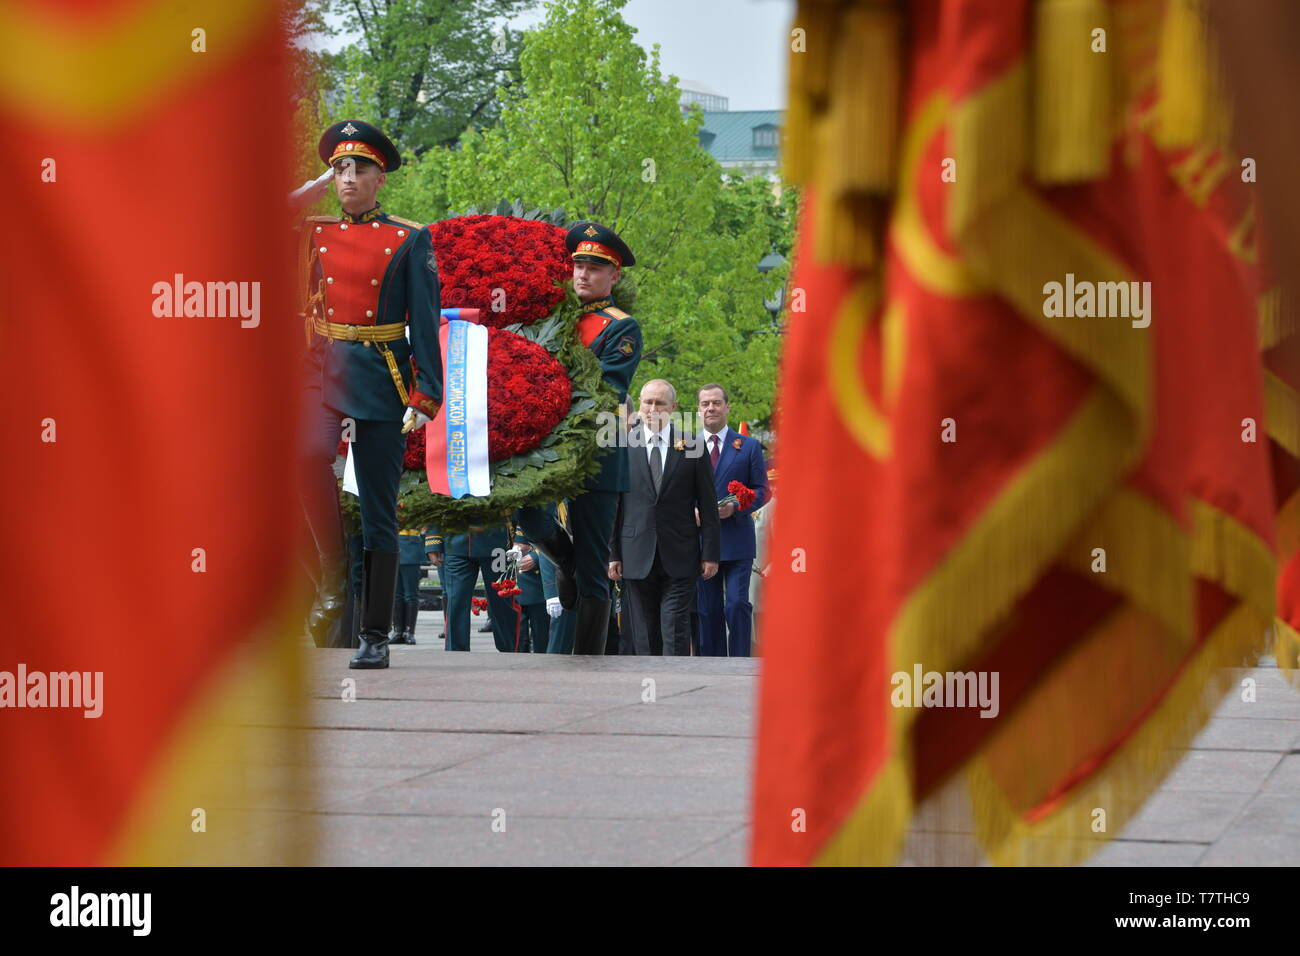 Moscow, Russia. 09th May, 2019. MOSCOW, RUSSIA - MAY 9, 2019: Russia's President Vladimir Putin and Russia's Prime Minister Dmitry Medvedev (L-R centre) during a ceremony to lay flowers at the Tomb of the Unknown Soldier by the Kremlin Wall during celebrations marking the 74th anniversary of the victory of the Soviet Red Army over Nazi Germany in the Great Patriotic War of 1941-45, the Eastern Front of the Second World War. Alexei Druzhinin/Russian Presidential Press and Information Office/TASS Credit: ITAR-TASS News Agency/Alamy Live News - Stock Image